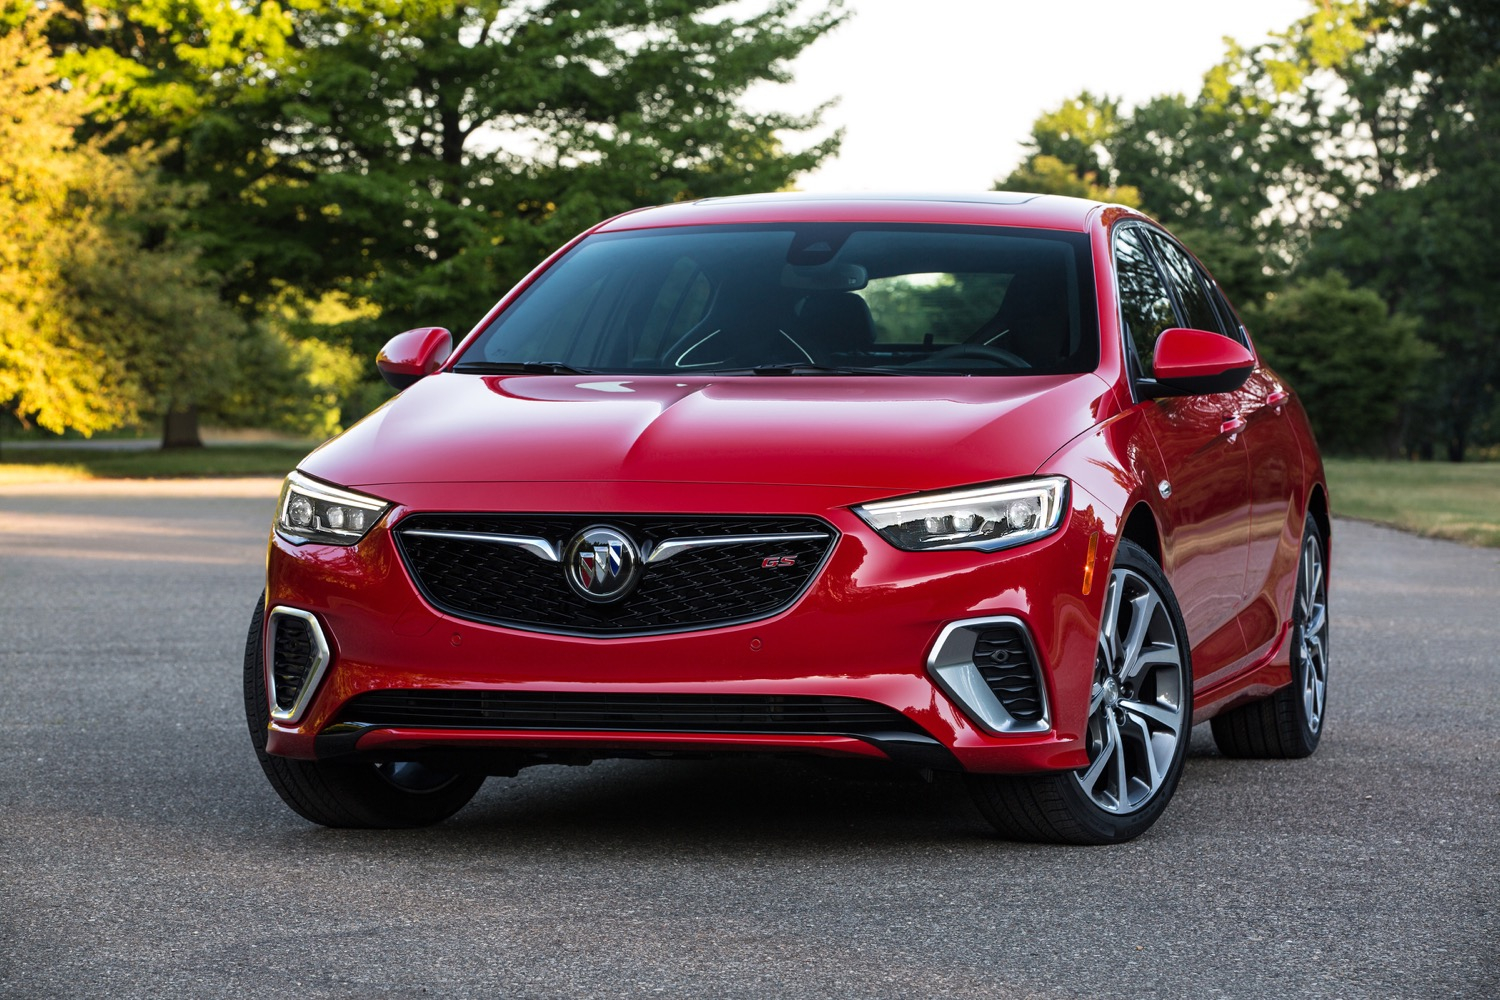 We Have Some Beef With This 2018 Buick Regal Gs Review | Gm New 2022 Buick Regal Gs Performance, Reviews, Awd